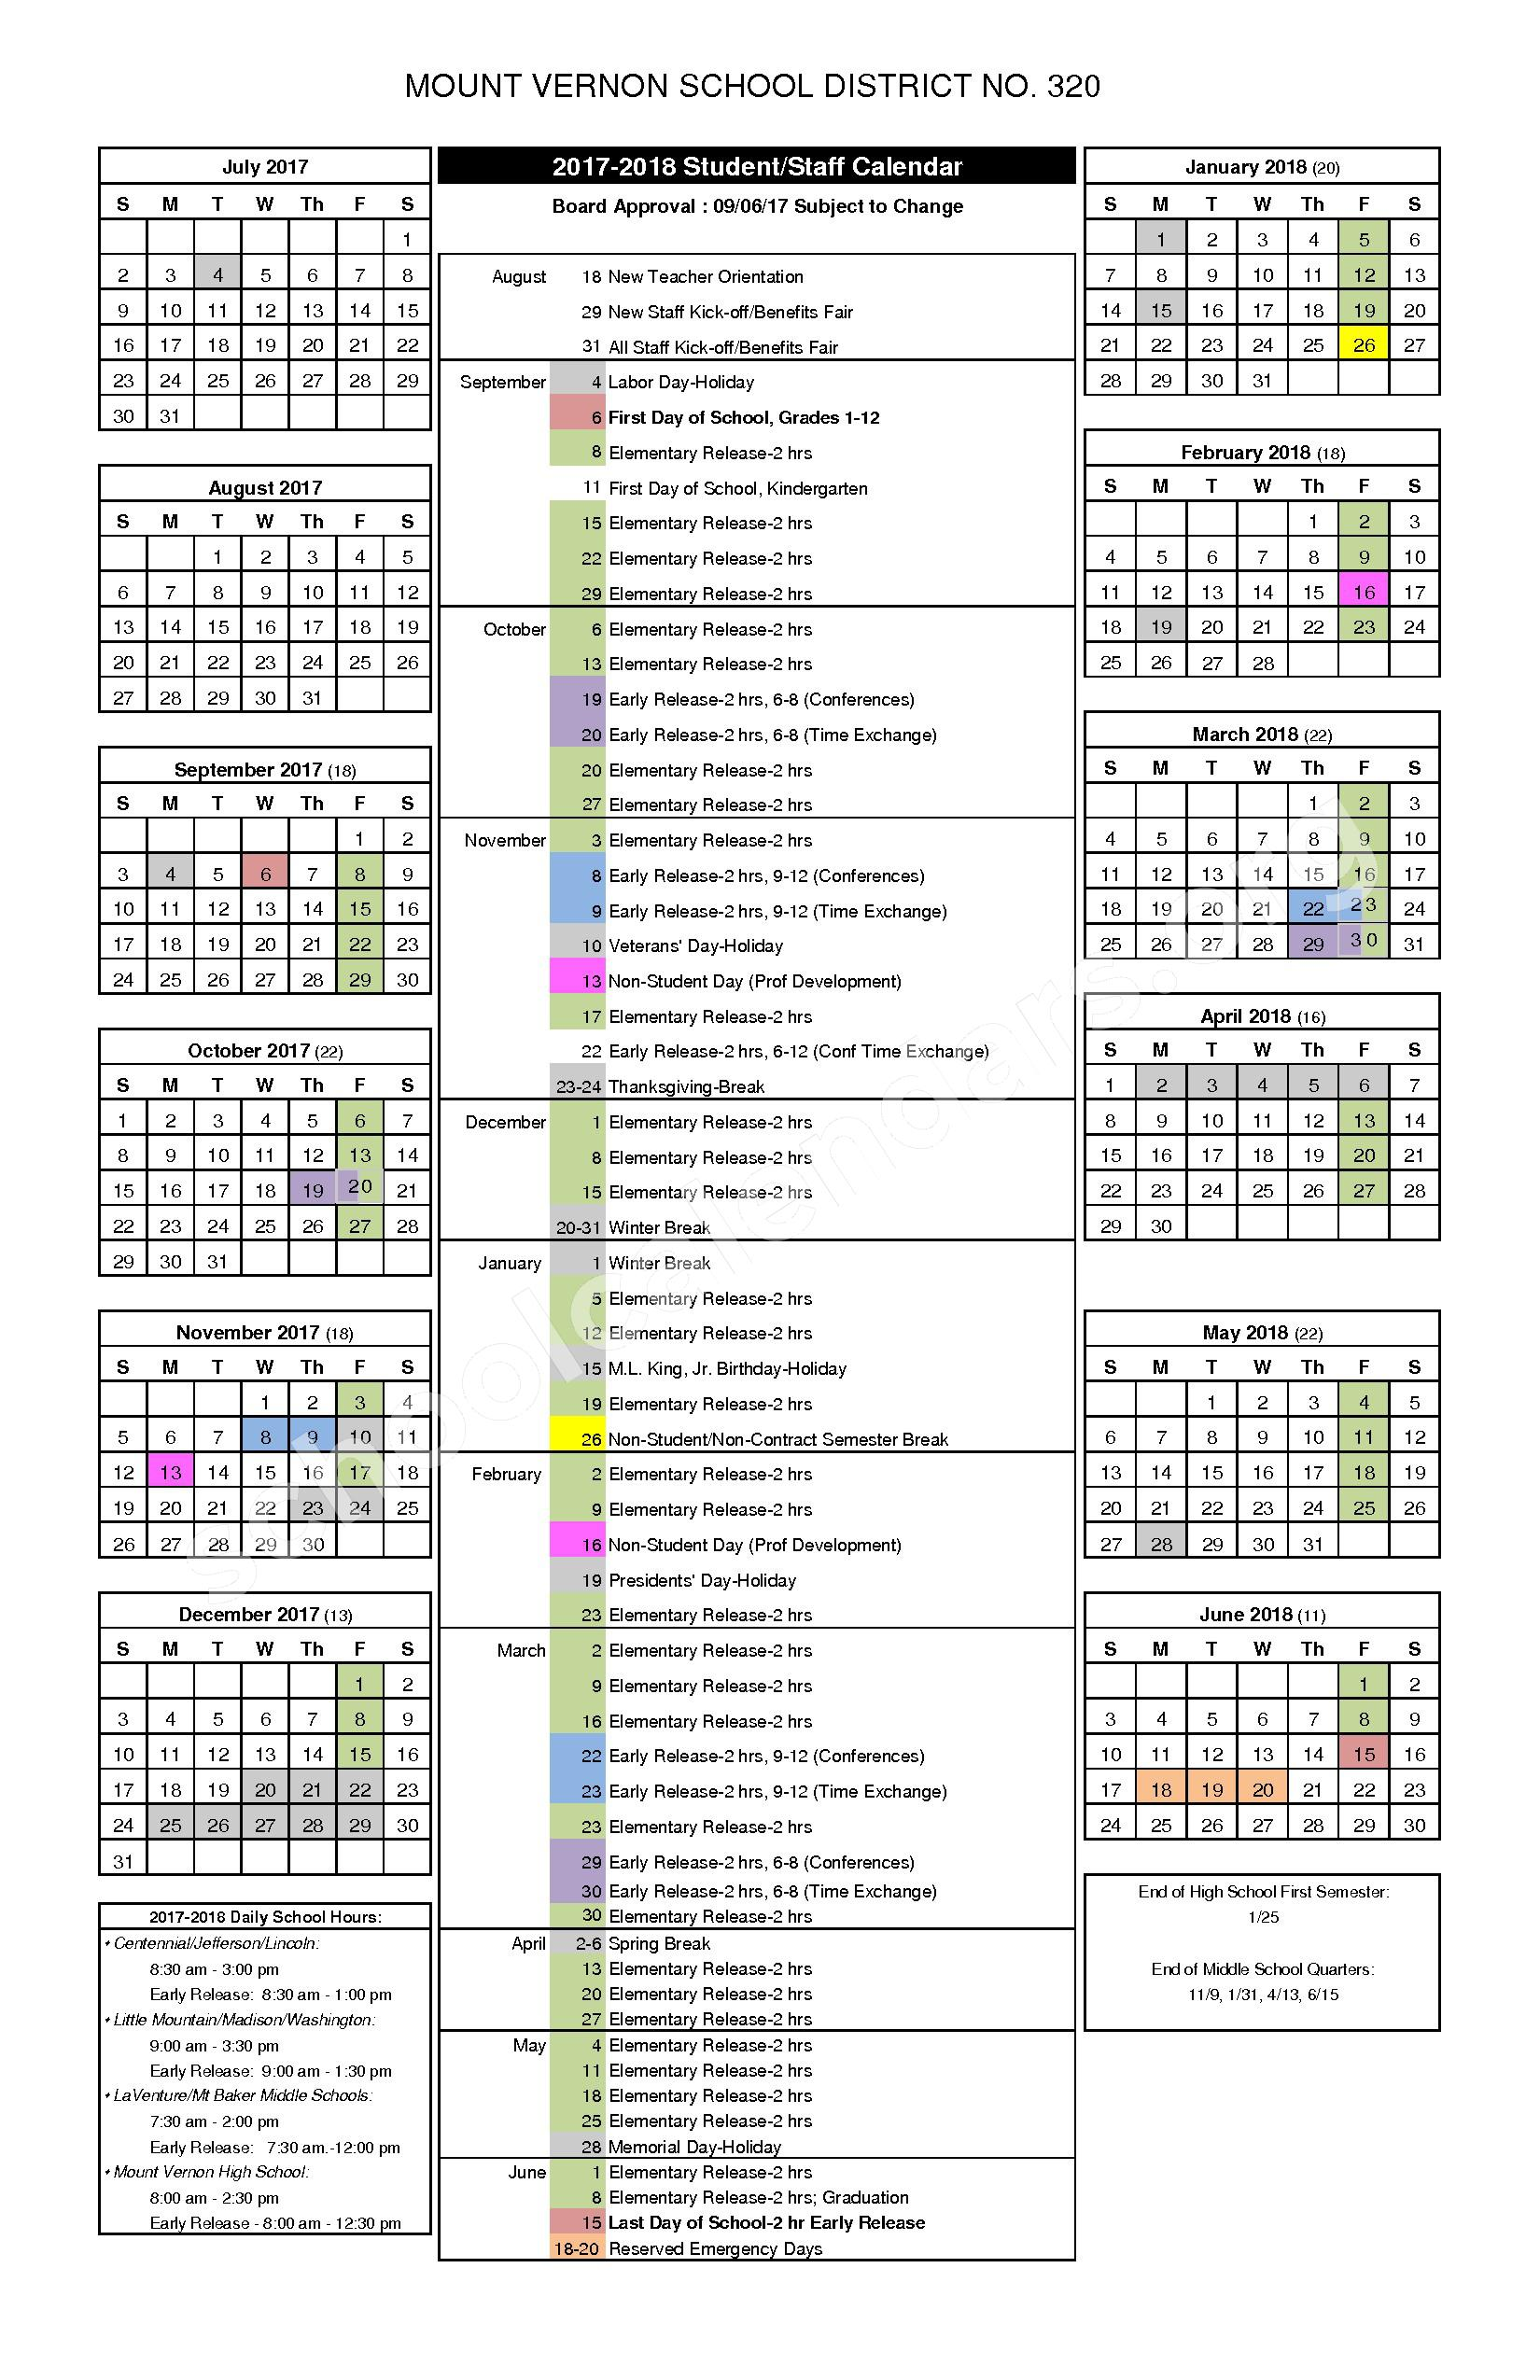 2017 - 2018 MVSD Student/Staff Calendar – Mount Vernon School District – page 1